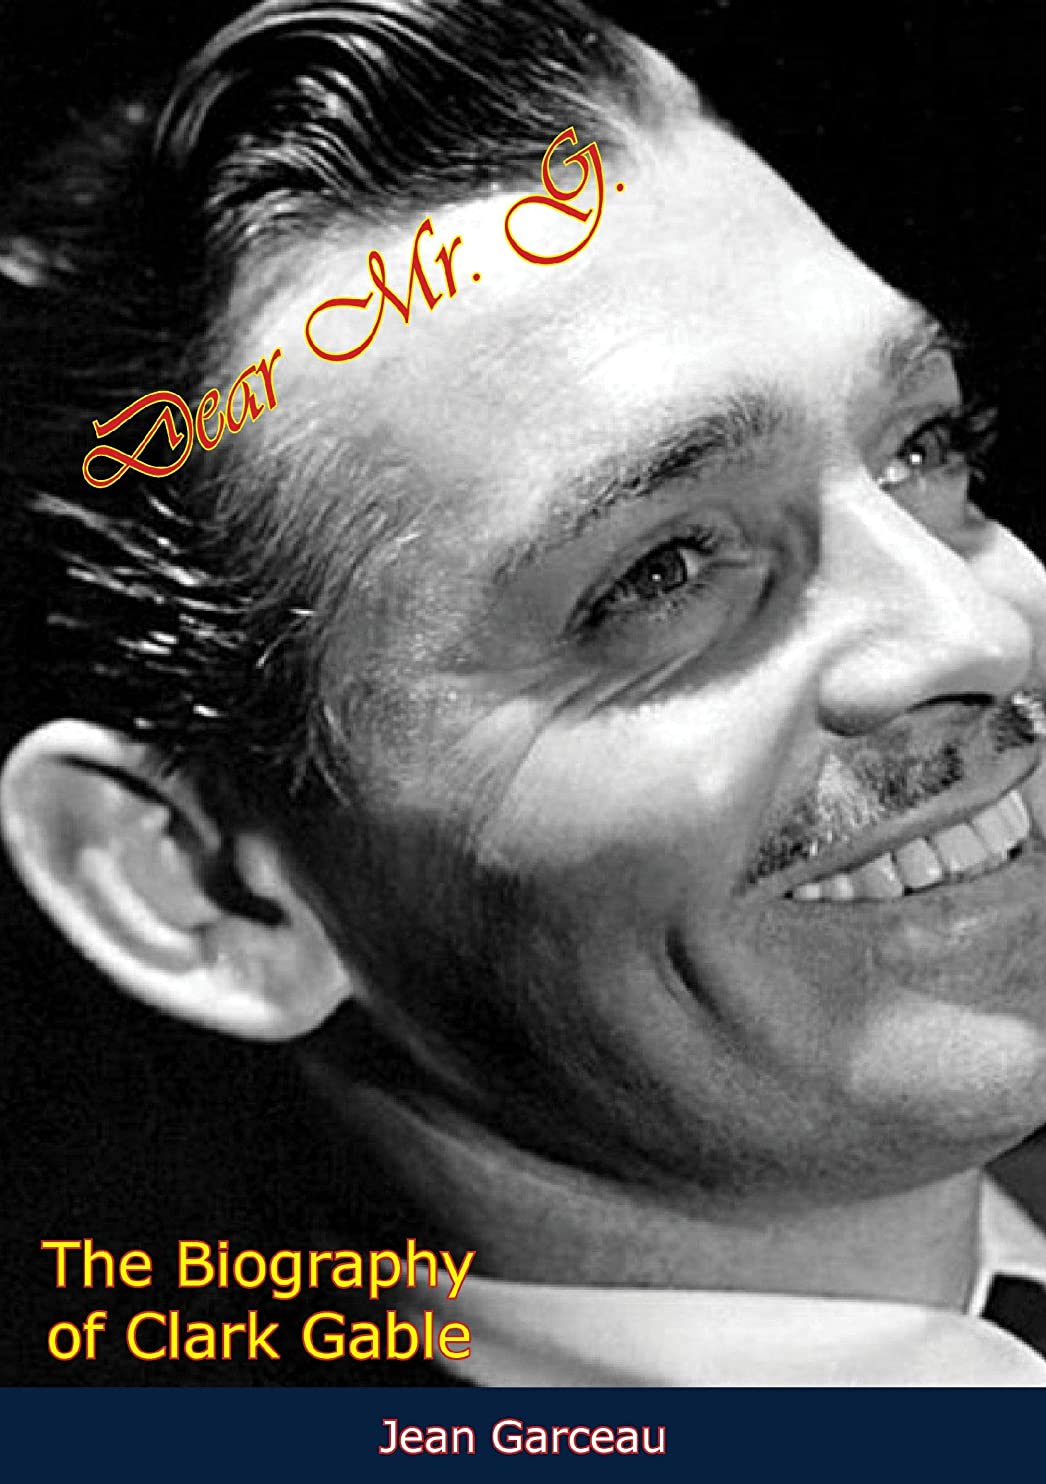 工業用モンゴメリー呼び起こすDear Mr. G.: The Biography of Clark Gable (English Edition)